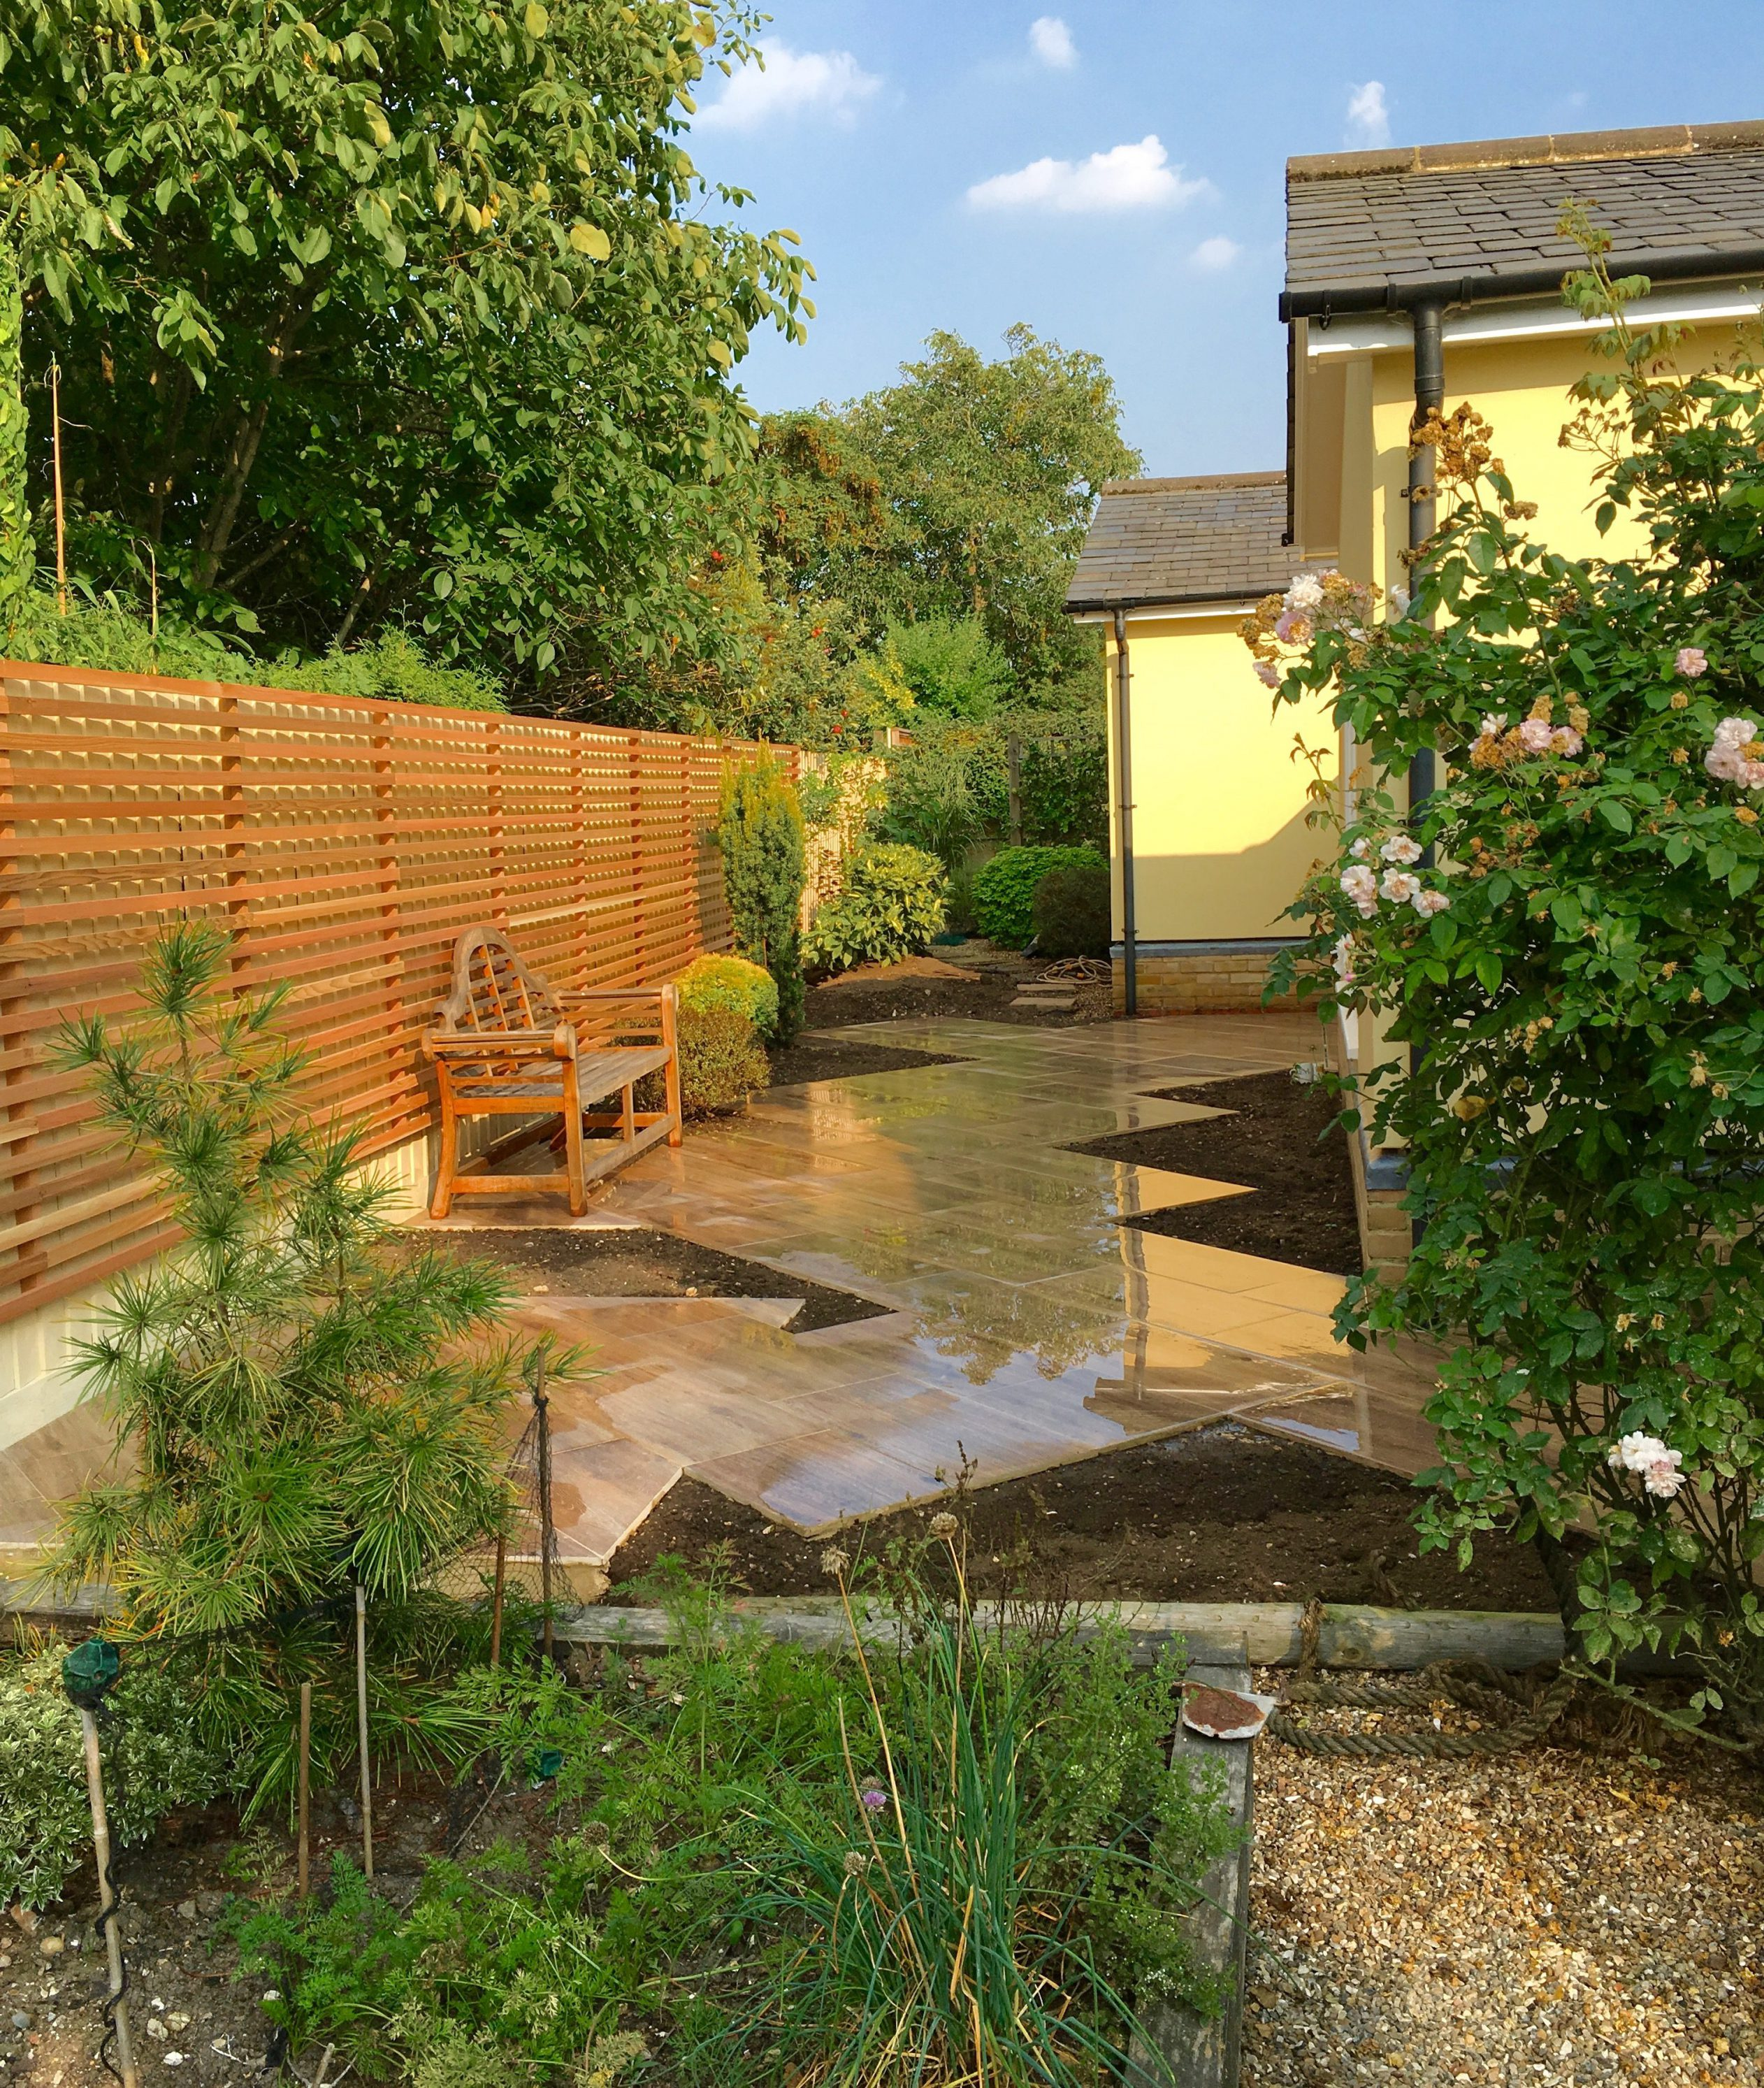 Garden landscape design bury st edmunds suffolk for Landscape design suffolk